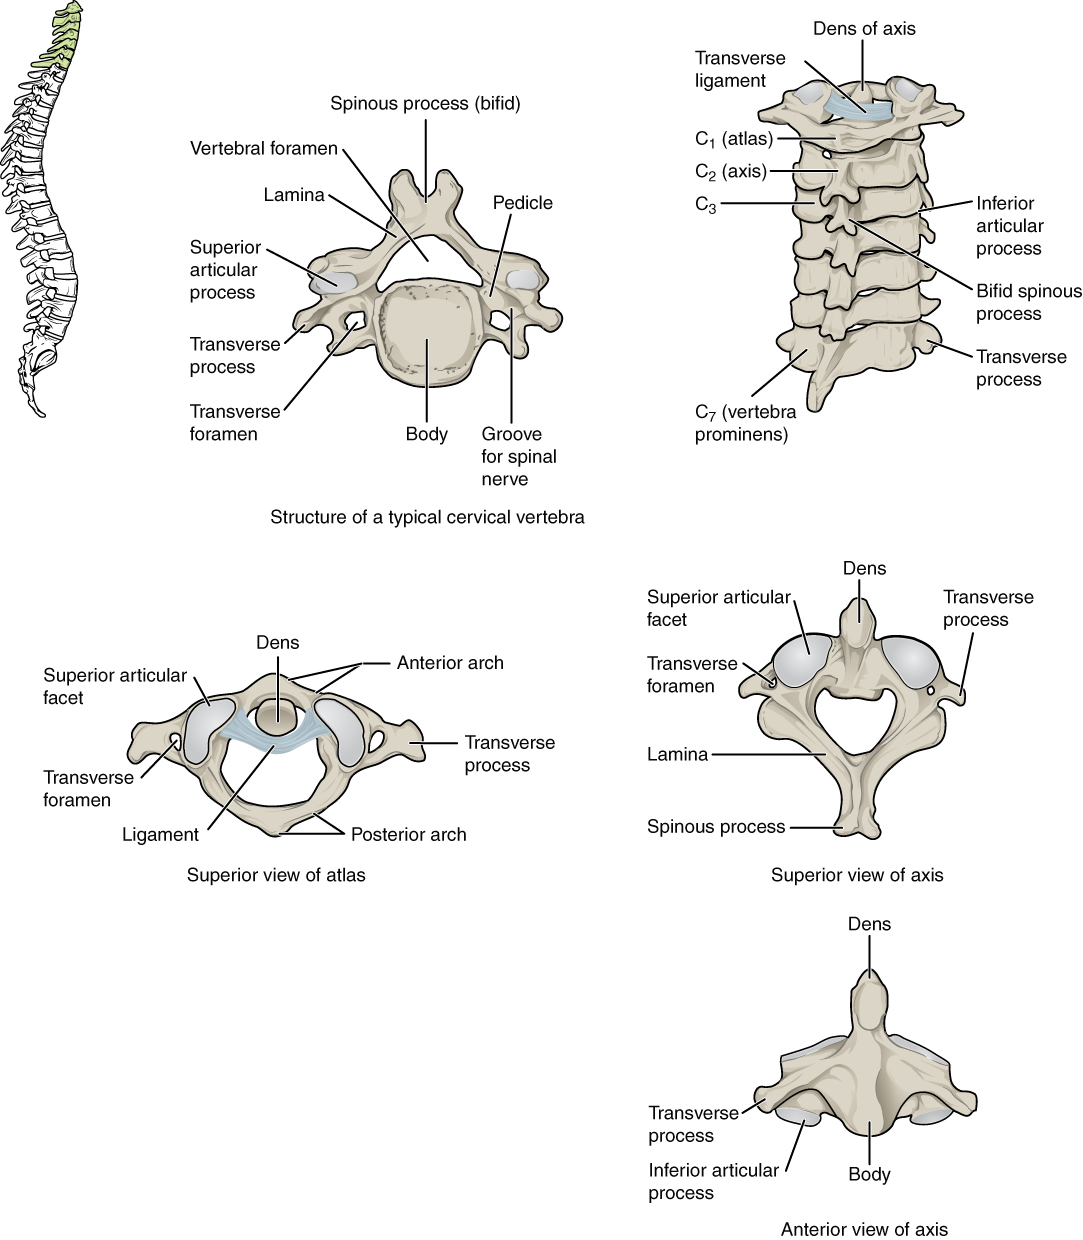 Thoracic Vertebrae The Vertebral Column By Openstax Page 566